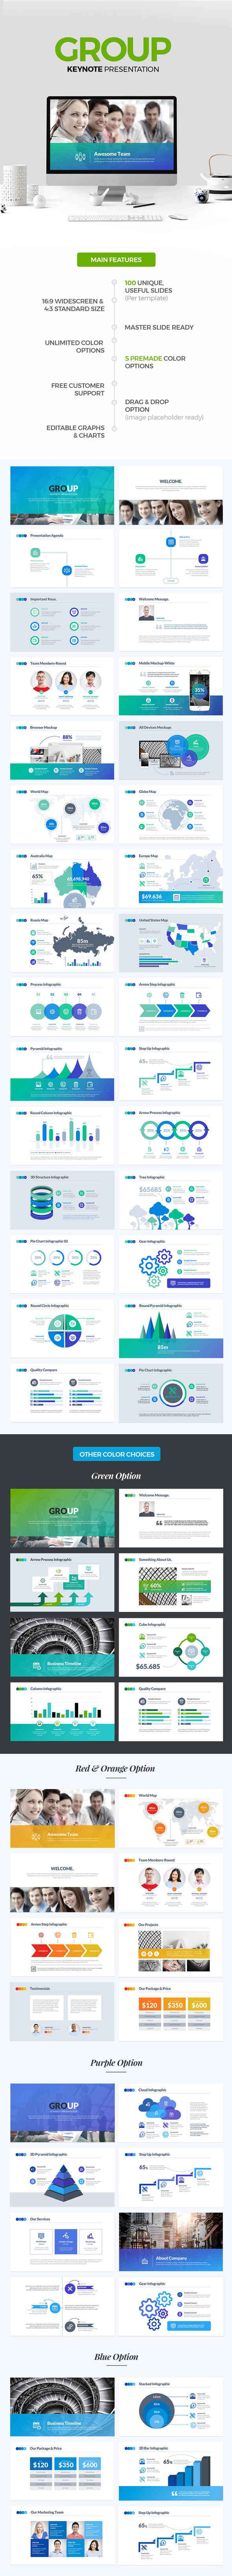 Group Keynote Template - Keynote Templates Presentation Templates